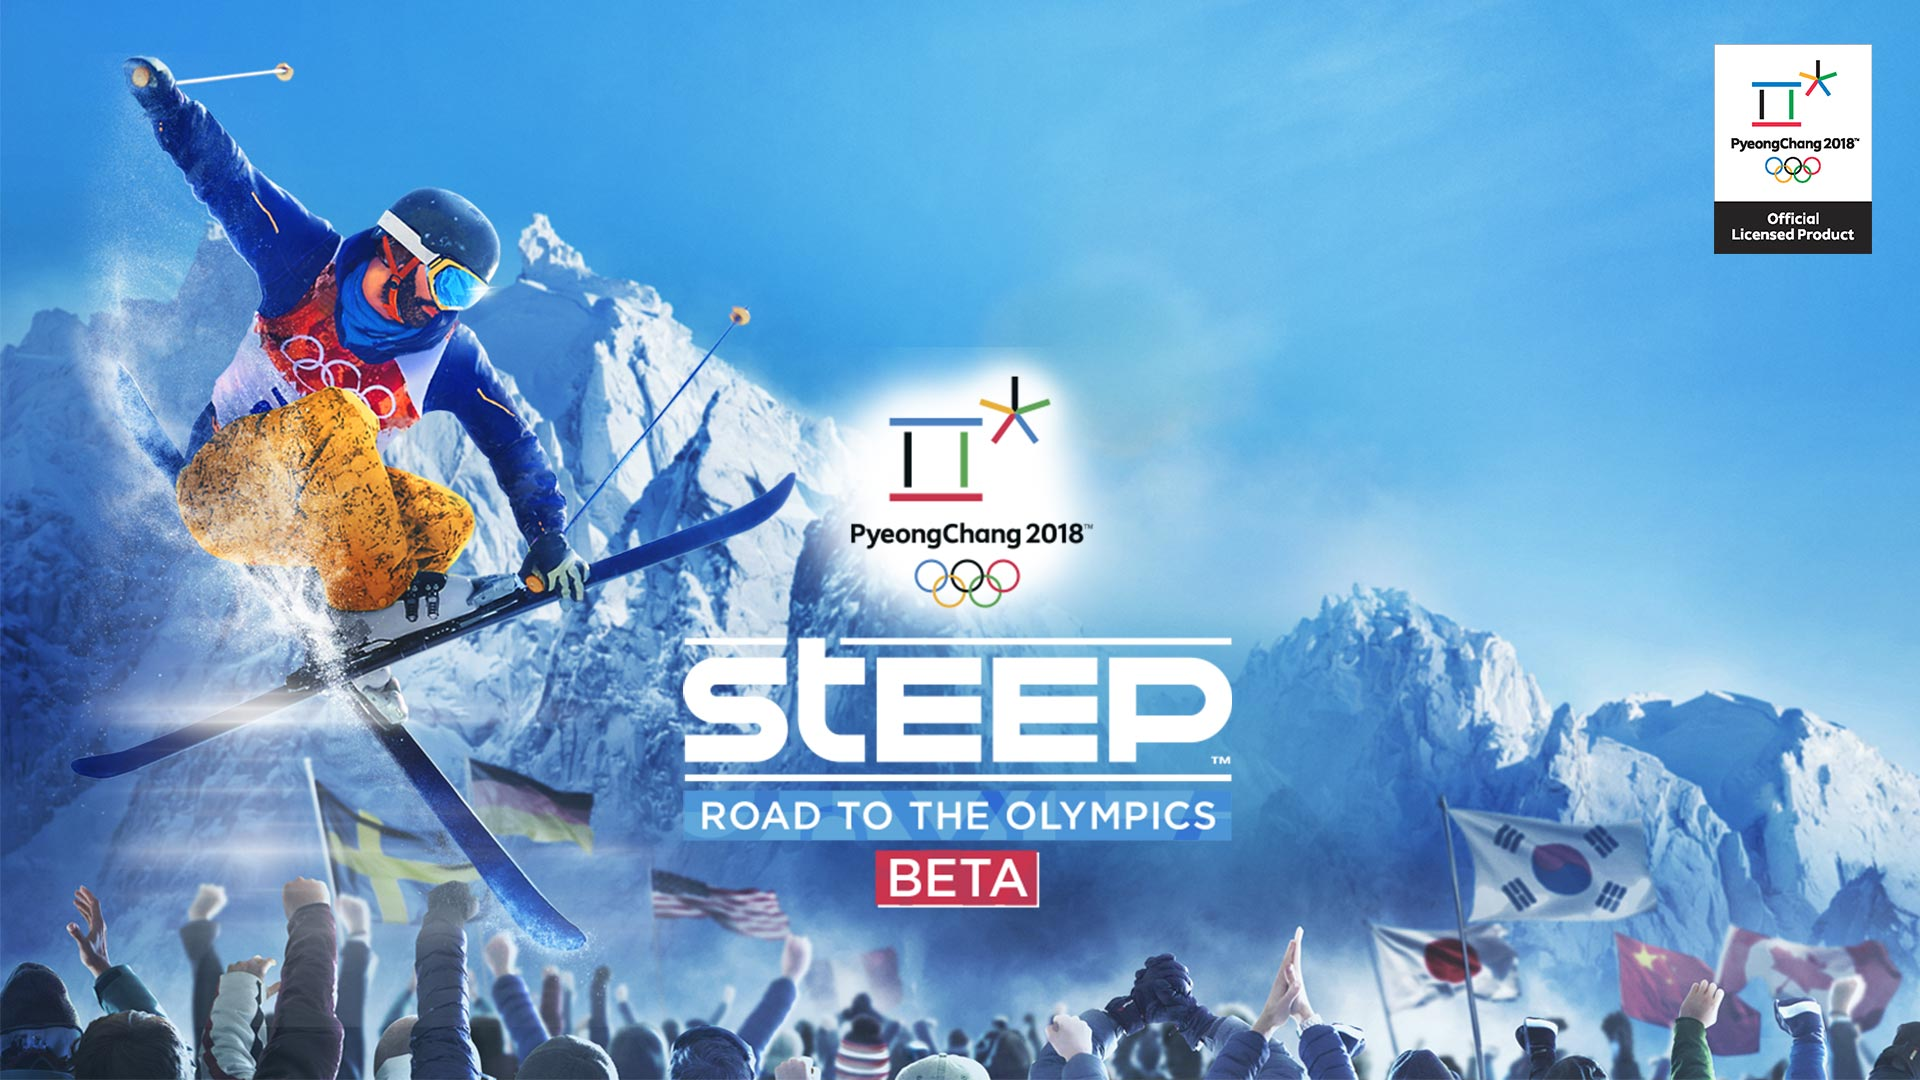 [2017-11-27] Road Olympics - Open Beta annoncement